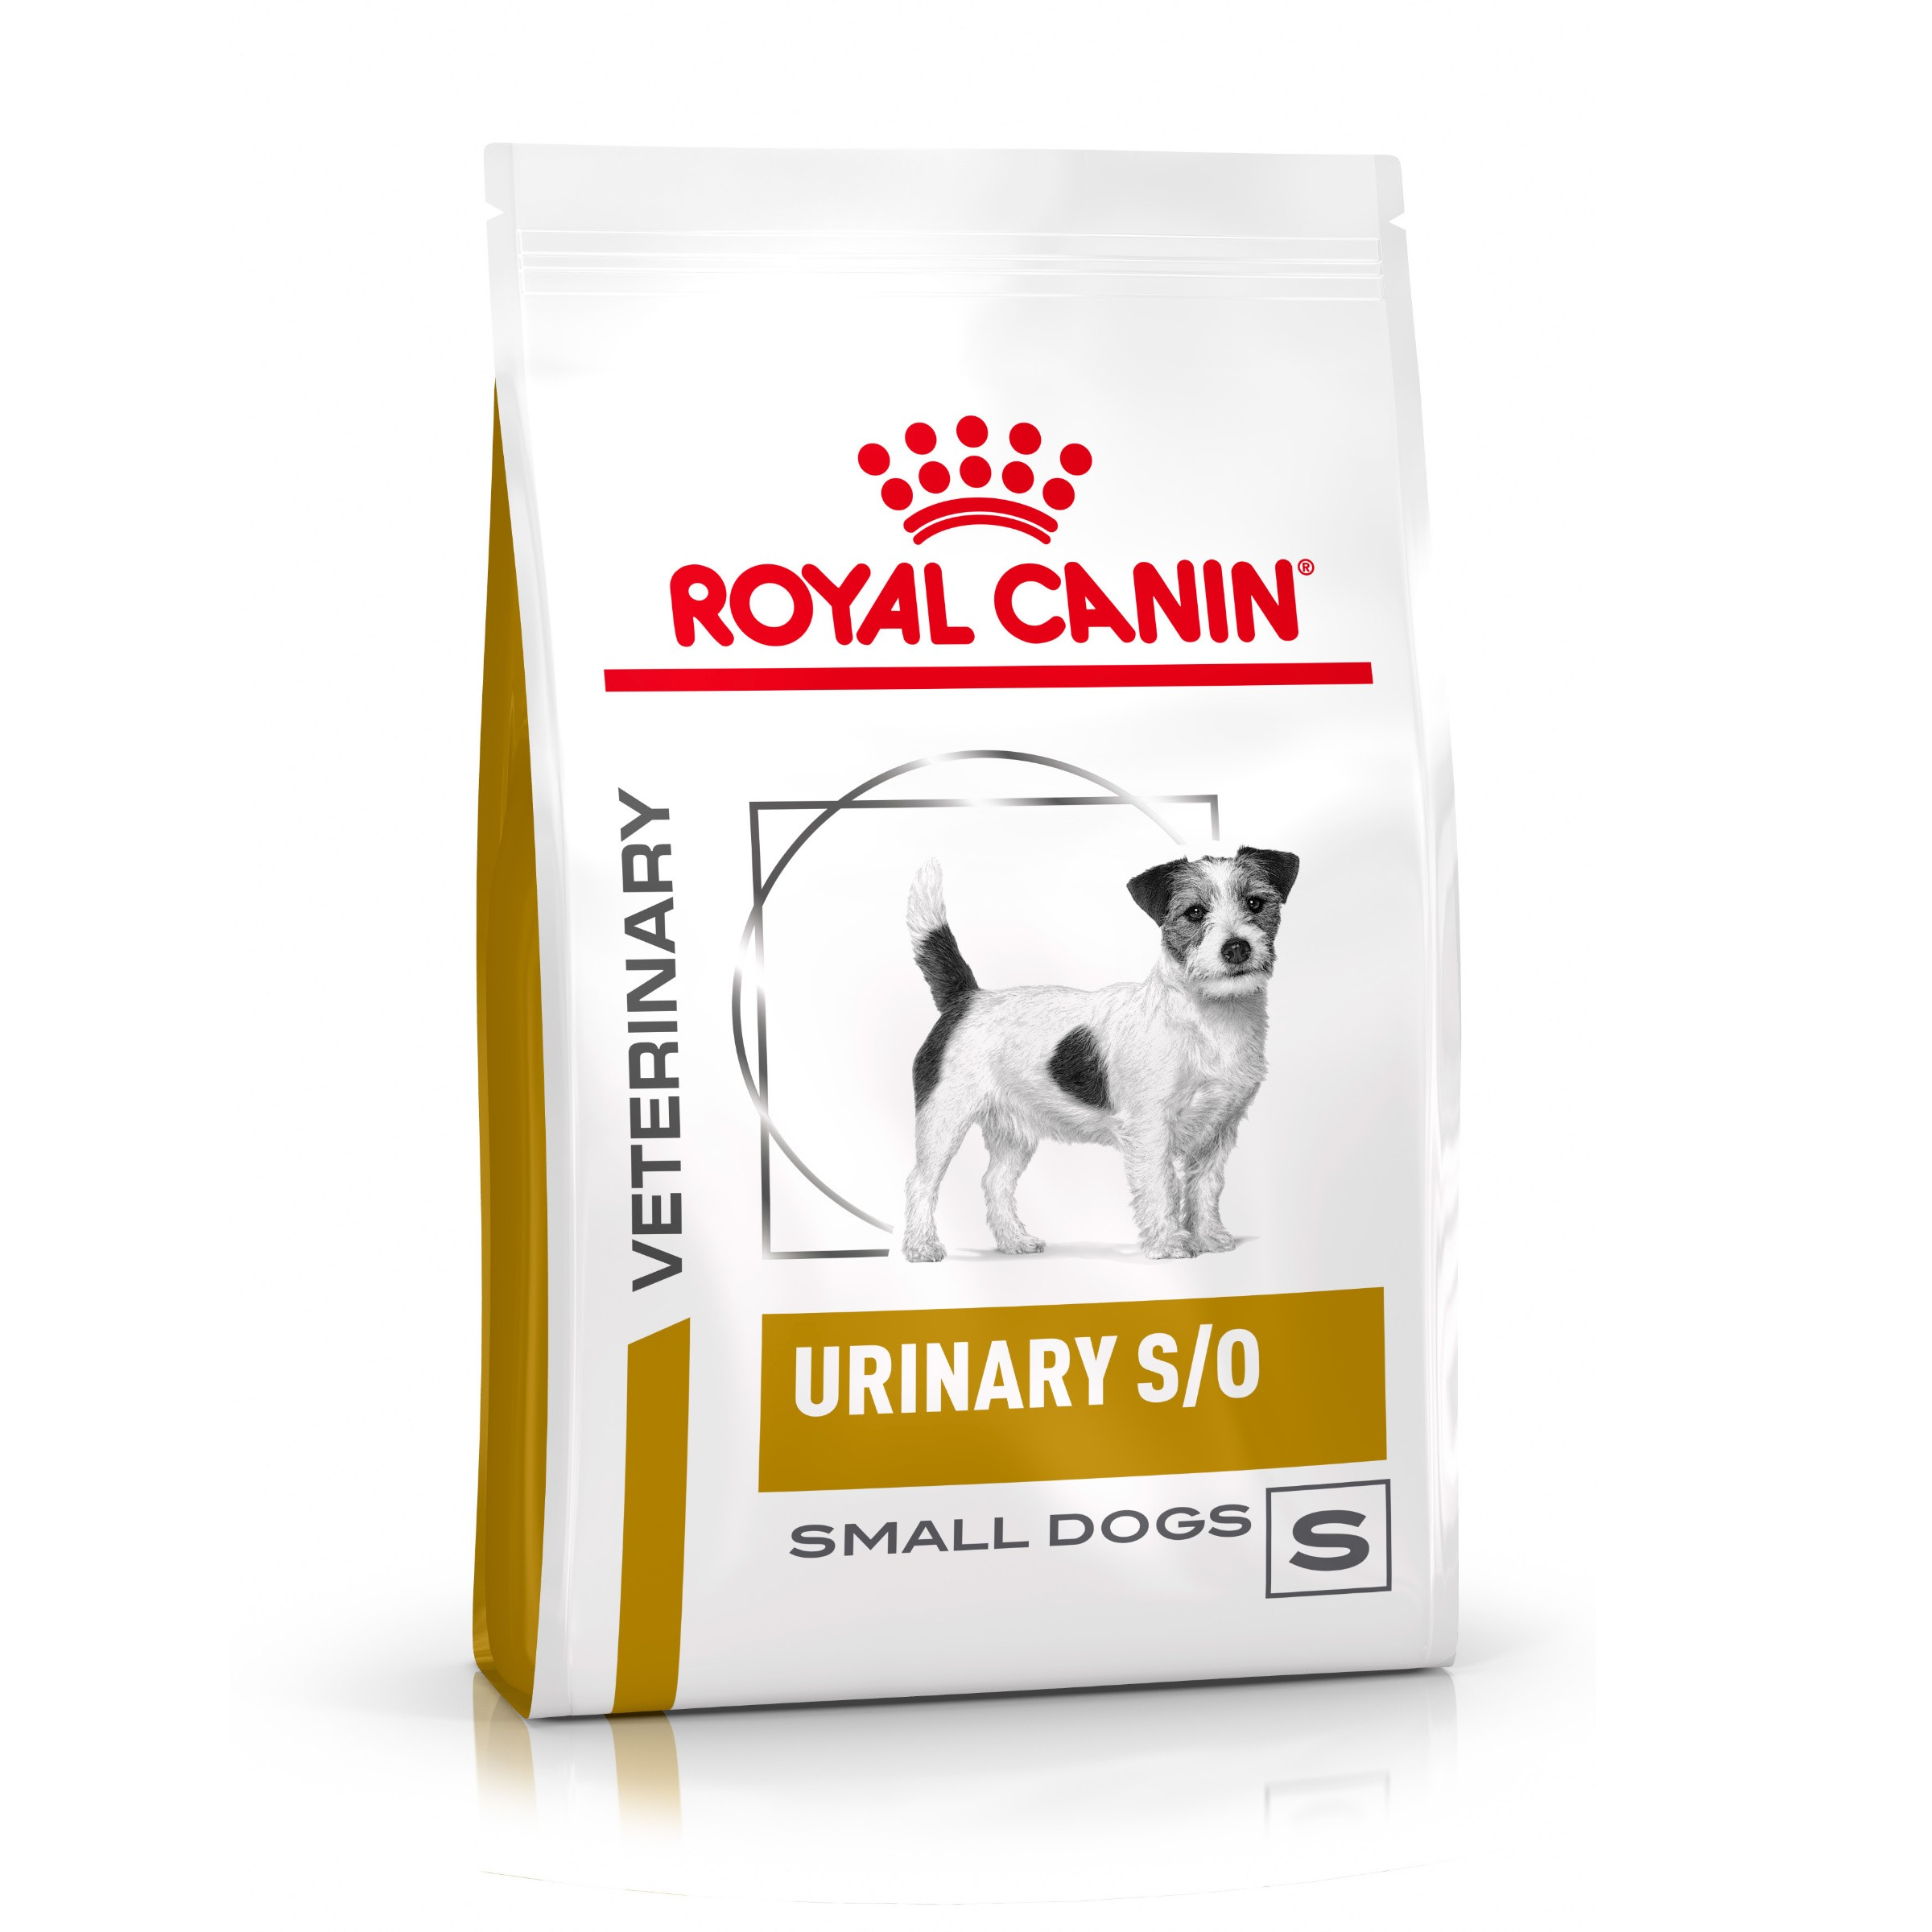 Royal Canin Urinary S/O Small Dog hondenvoer